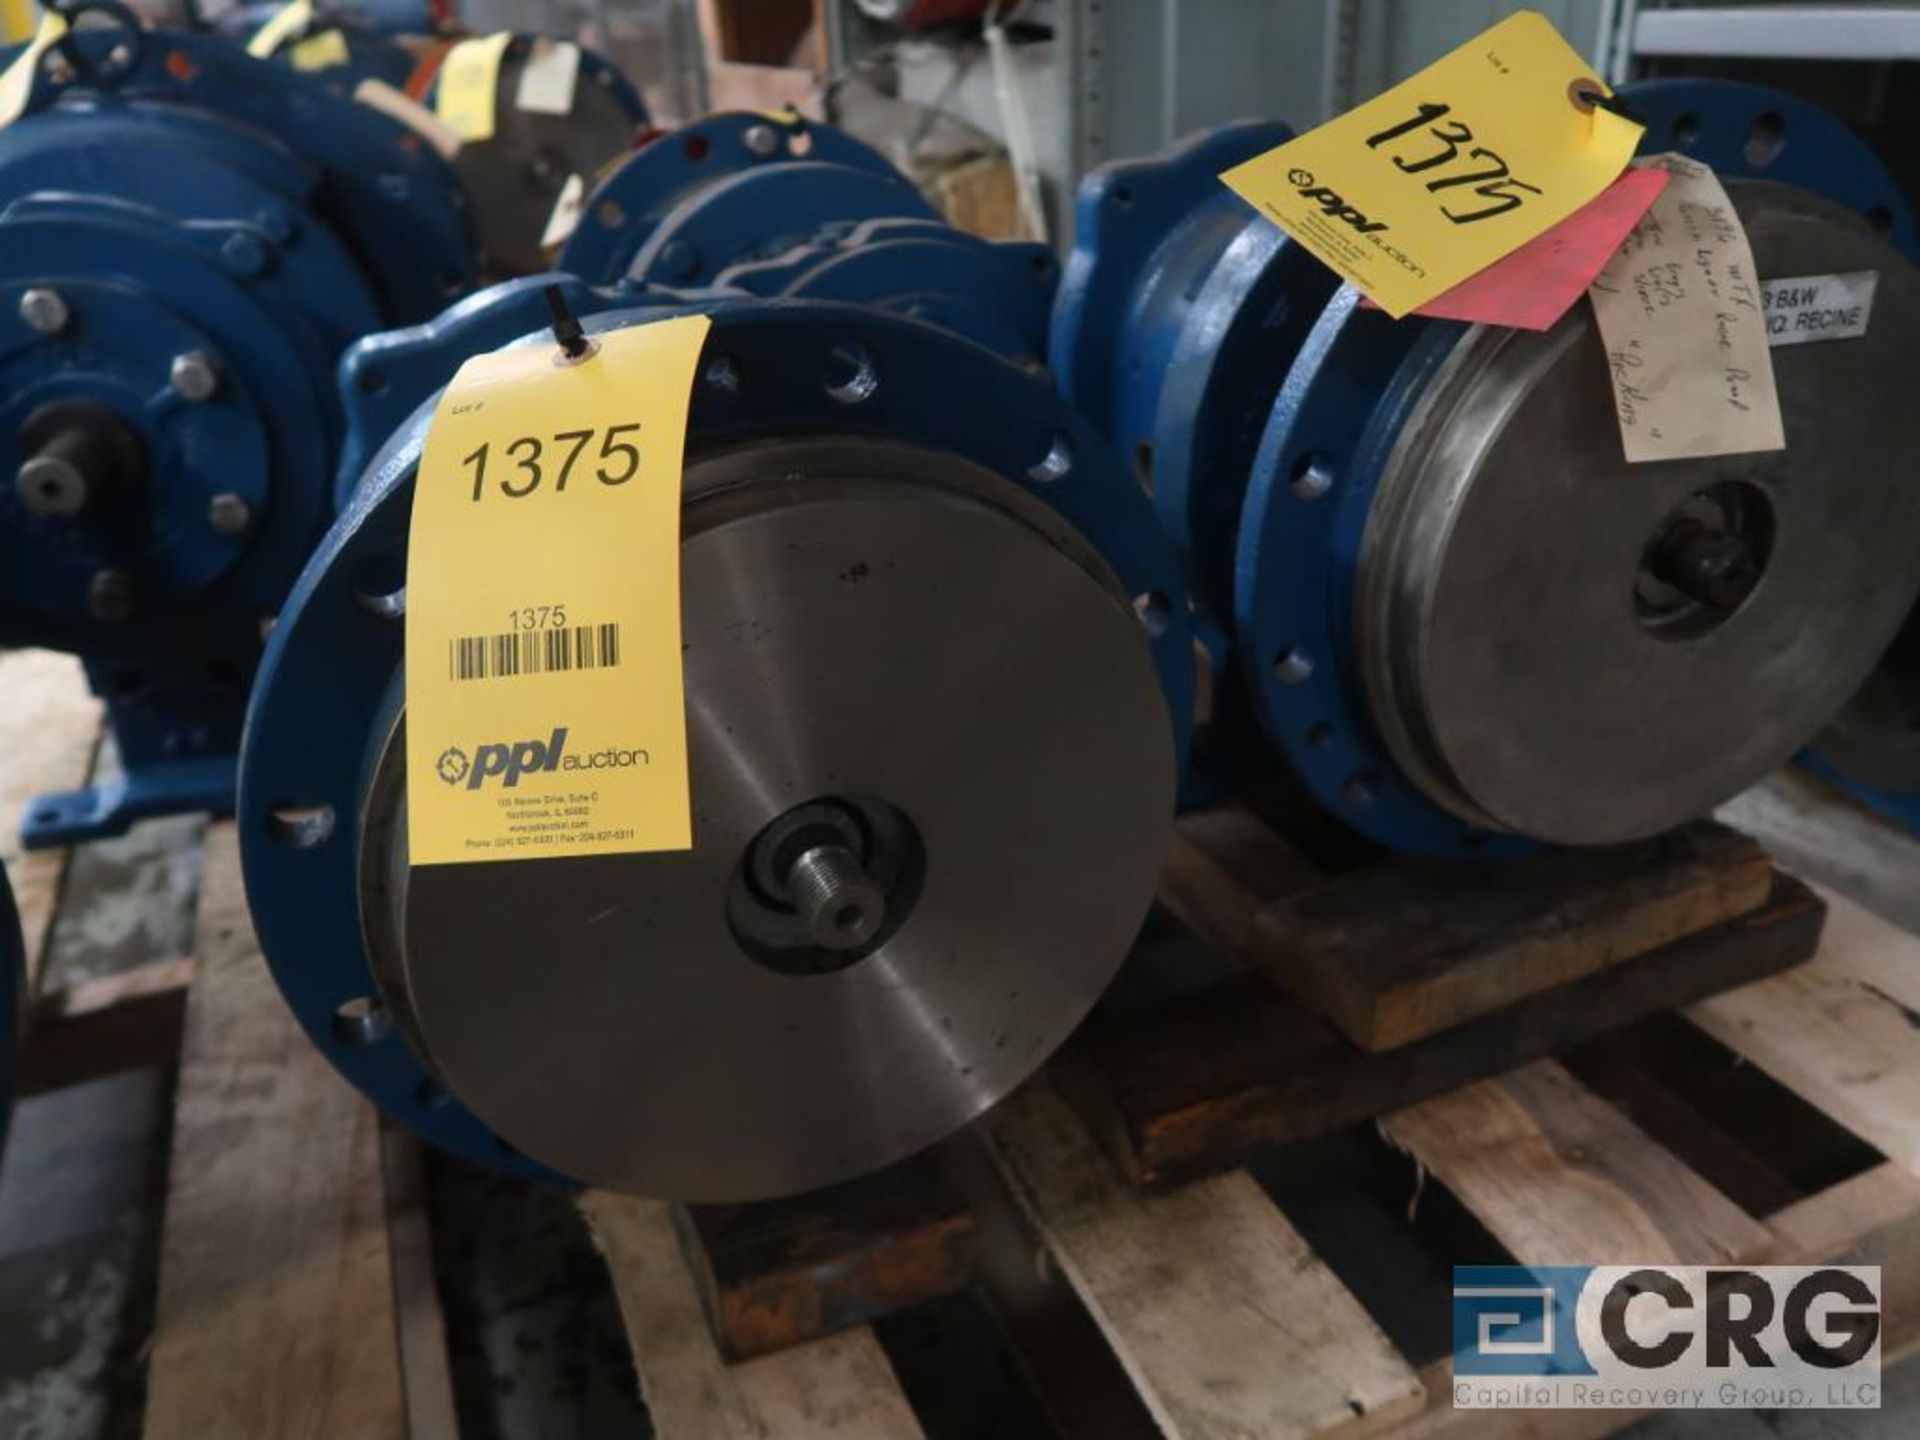 Lot of (3) Goulds 3196 MTX 10 in. pumps (Basement Stores) - Image 2 of 3